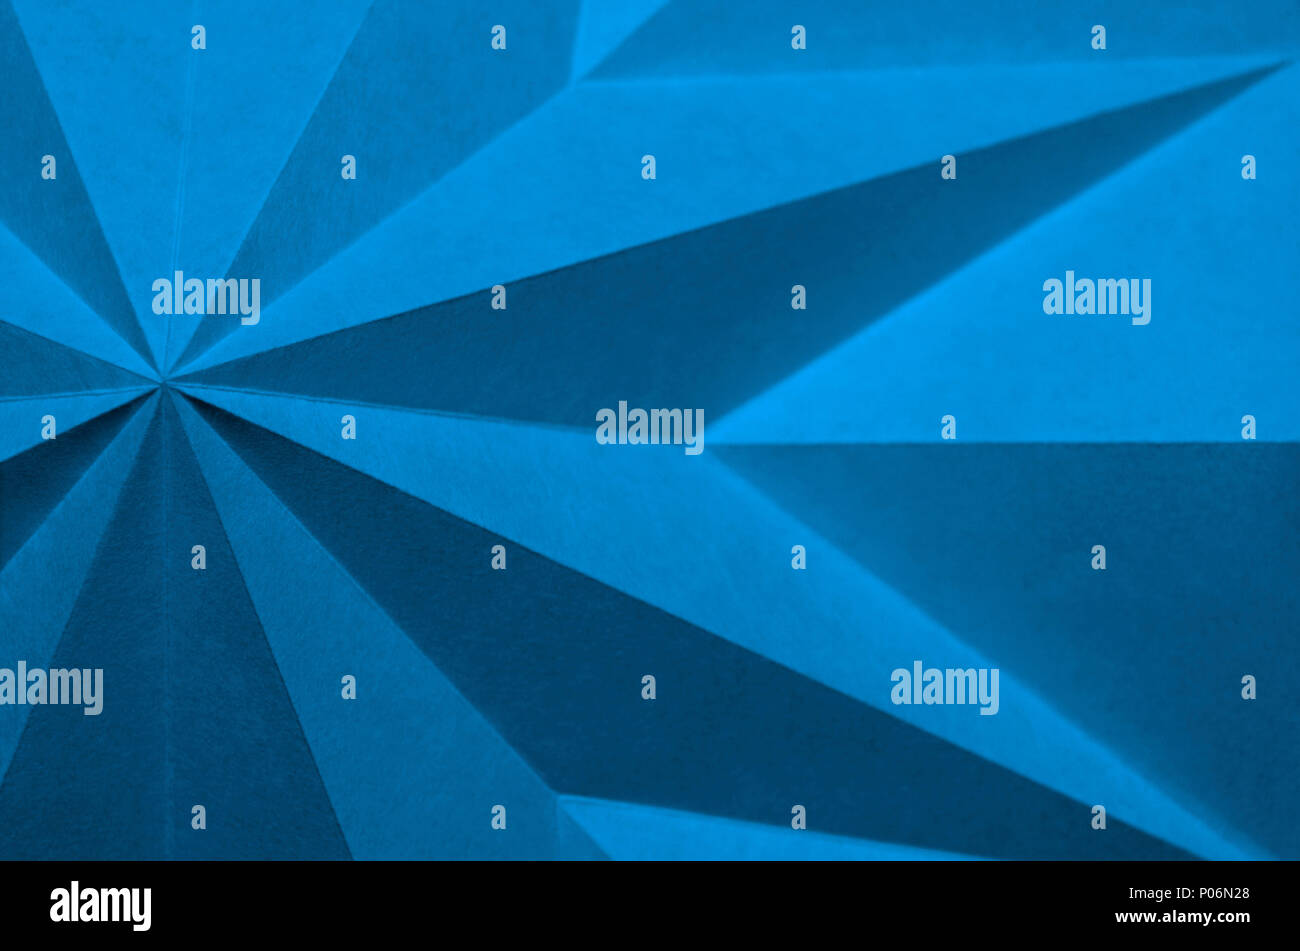 blue origami background abstract wallpaper. Shallow focus, graphic macro, angular, monochrome folded paper. Pantone 16-4132; Little Boy Blue - Stock Image